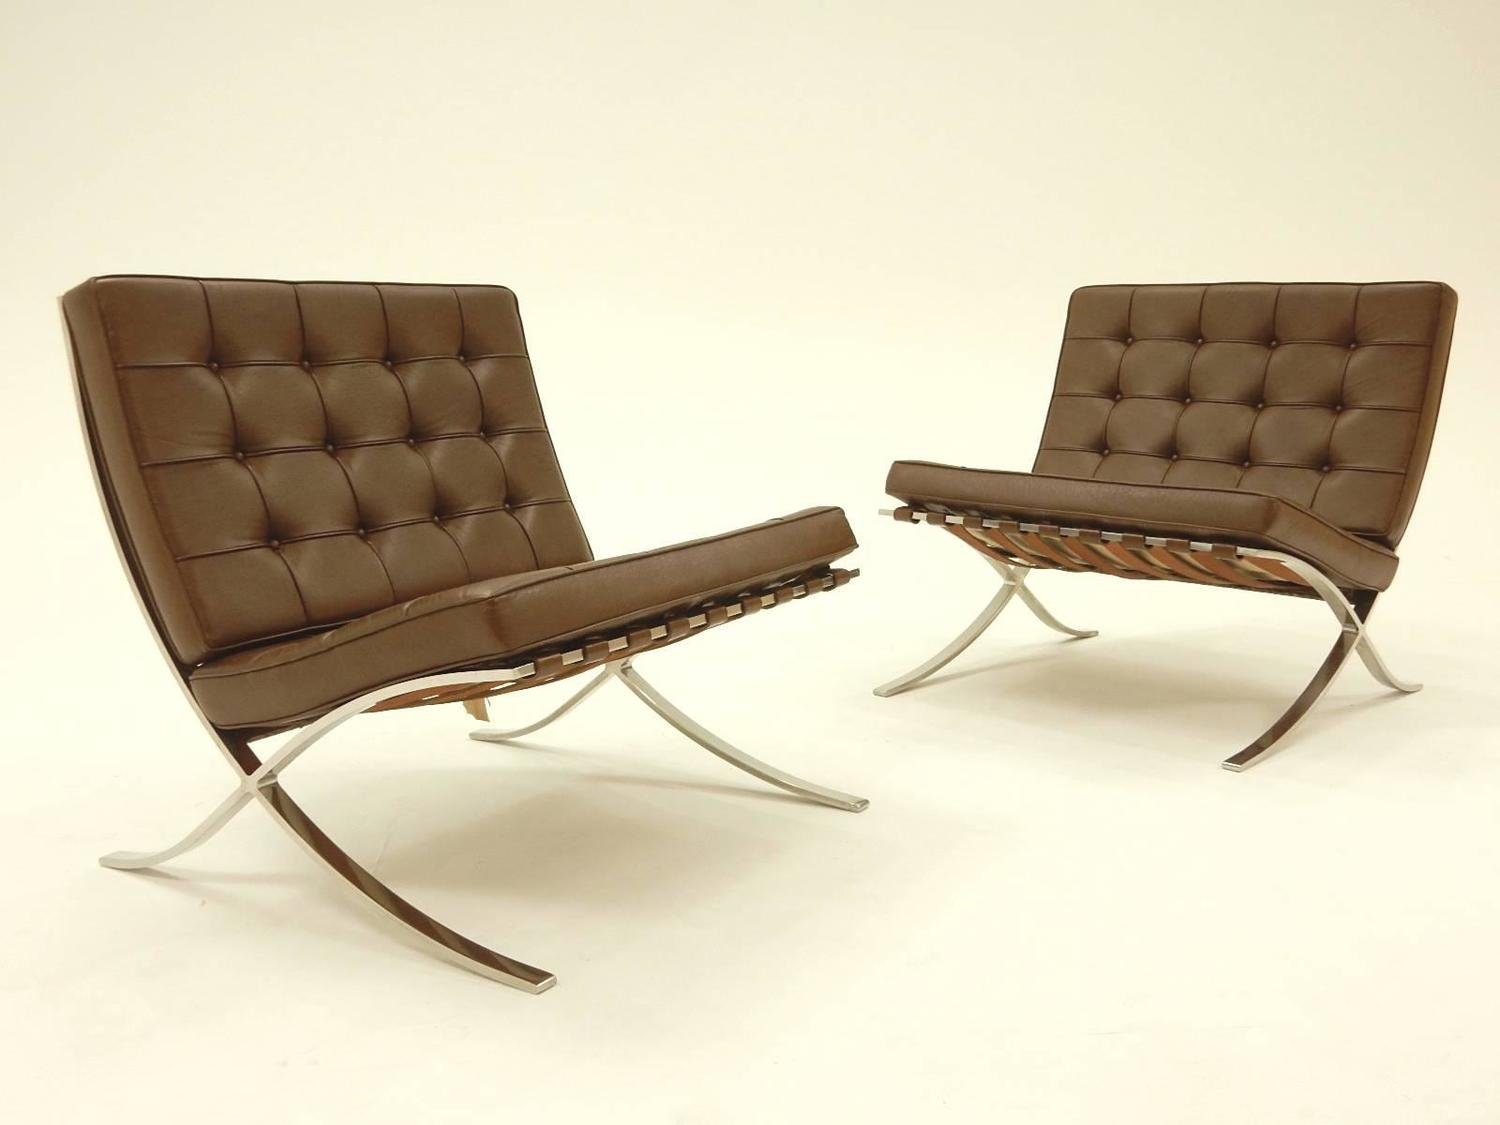 mies van der rohe for knoll international barcelona lounge chairs. Black Bedroom Furniture Sets. Home Design Ideas